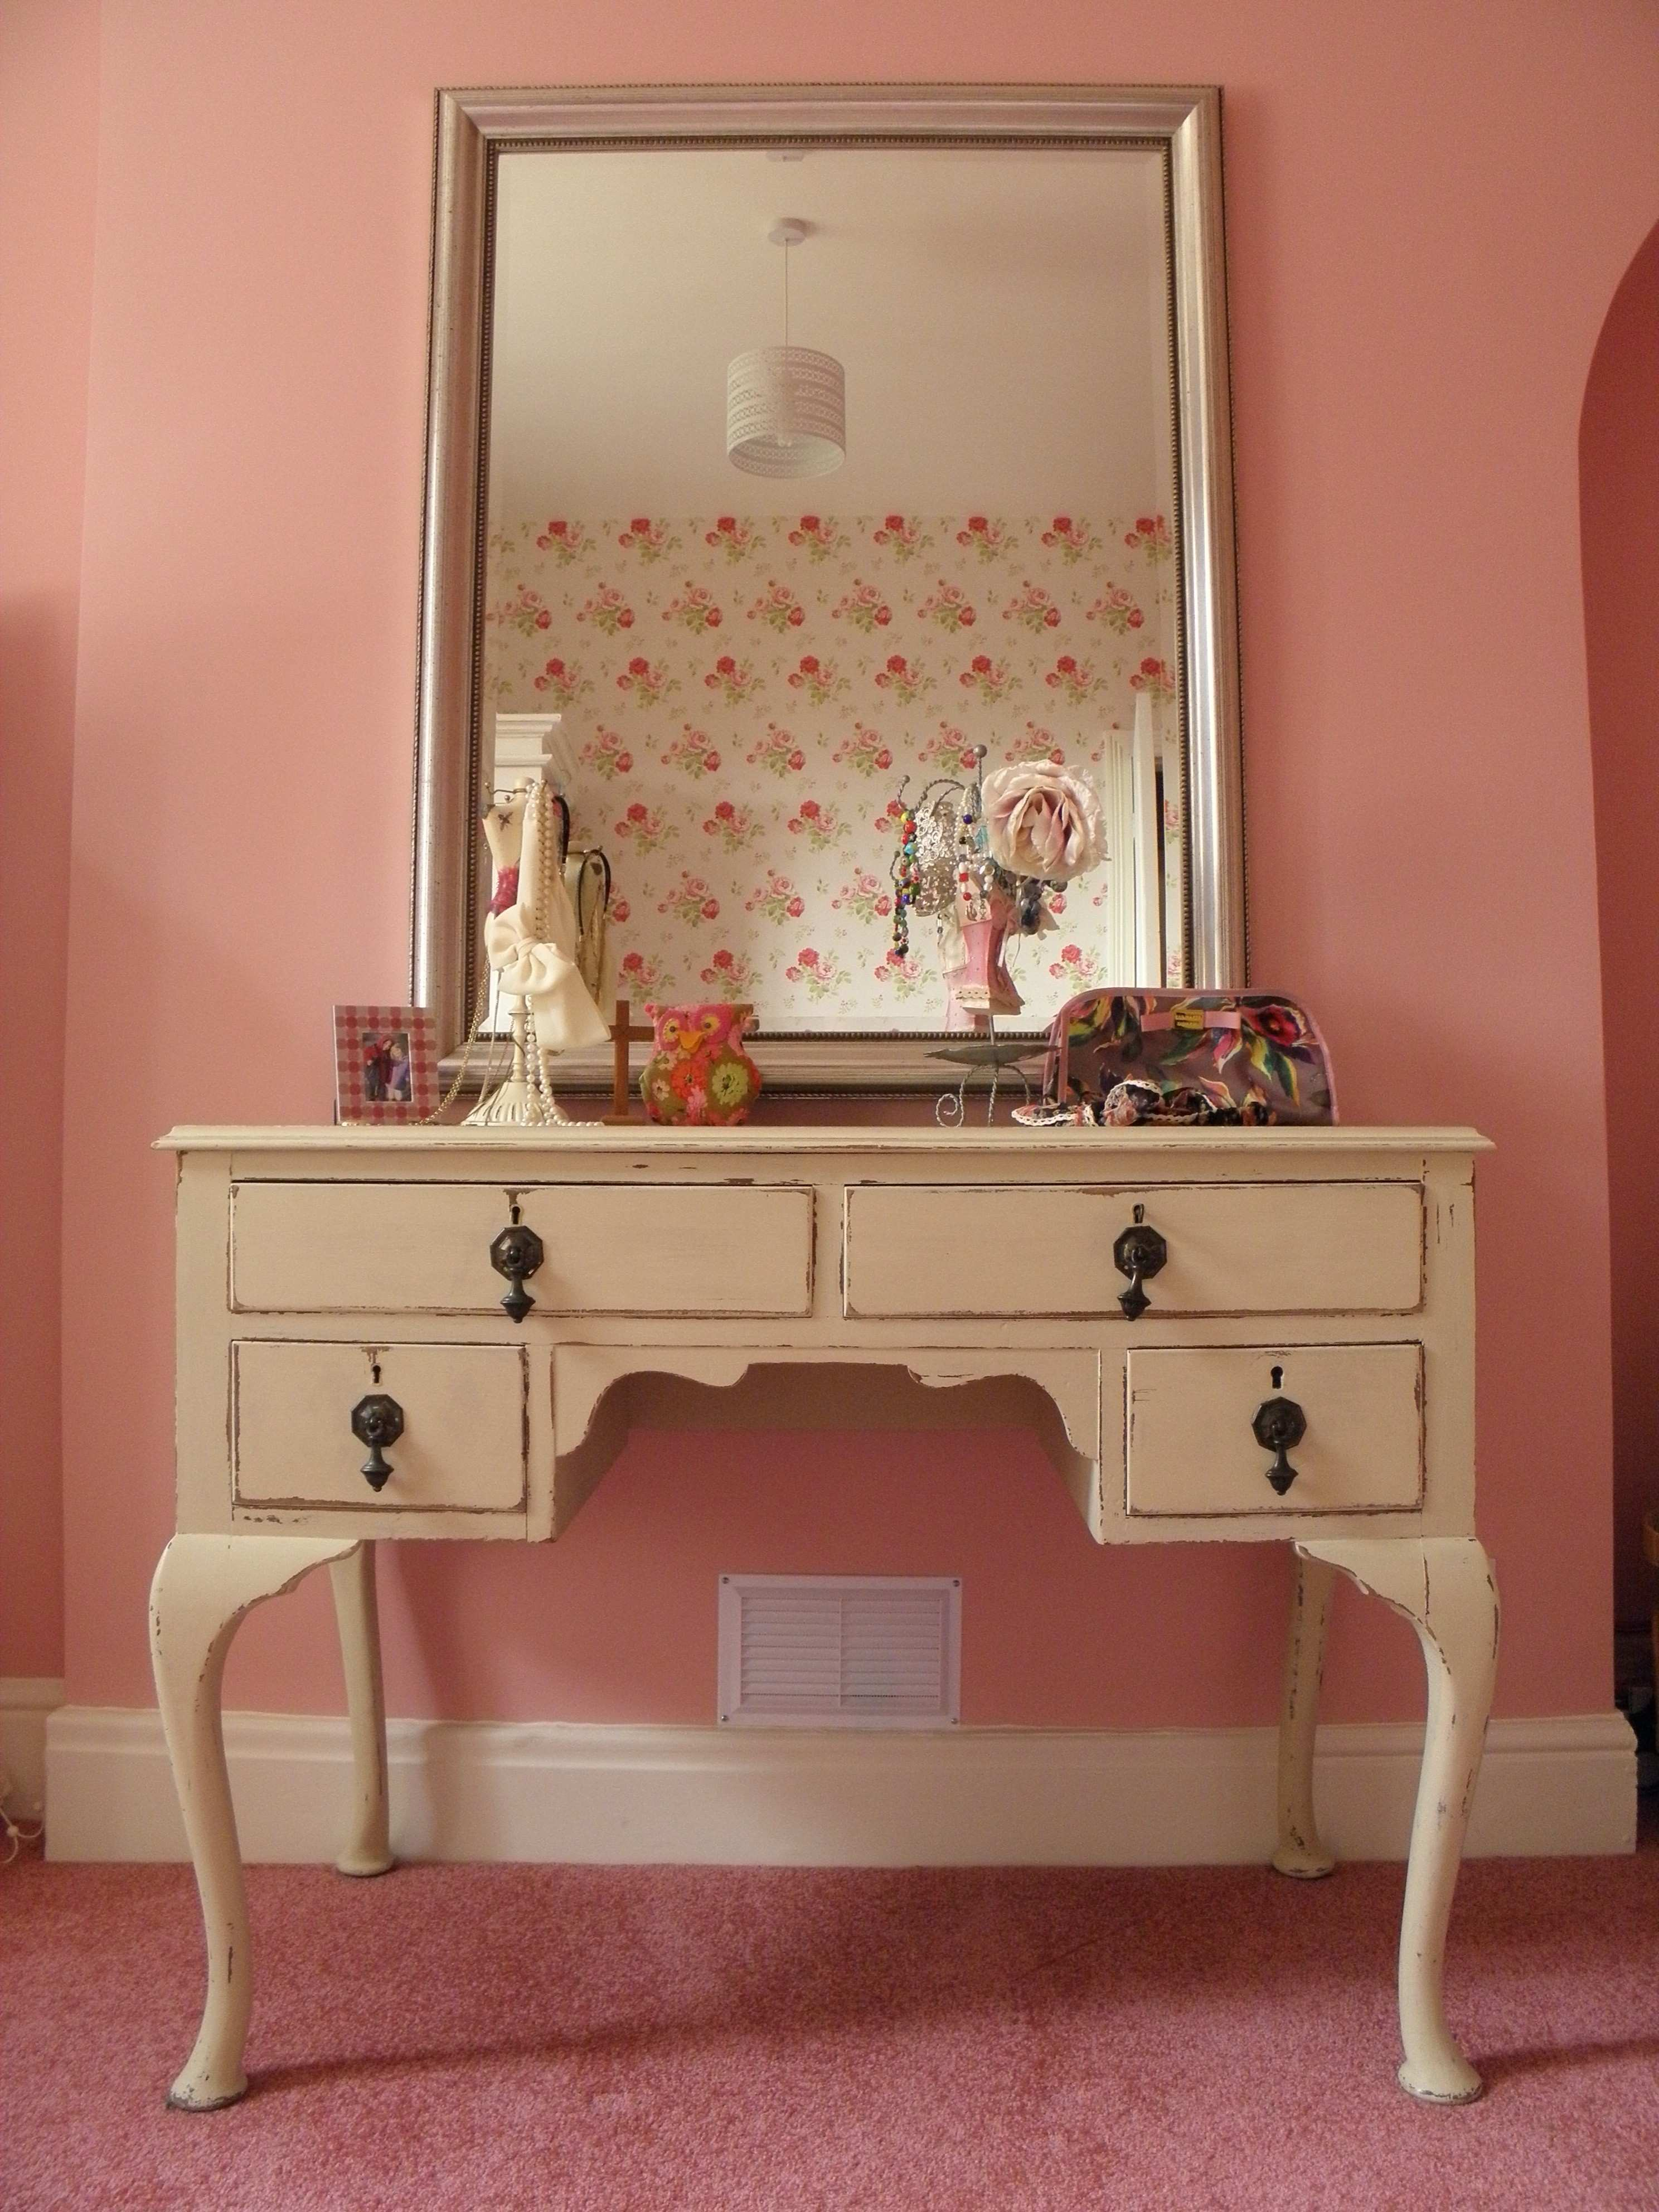 beige wooden Dressing Table with legs and drawers on pink rug added